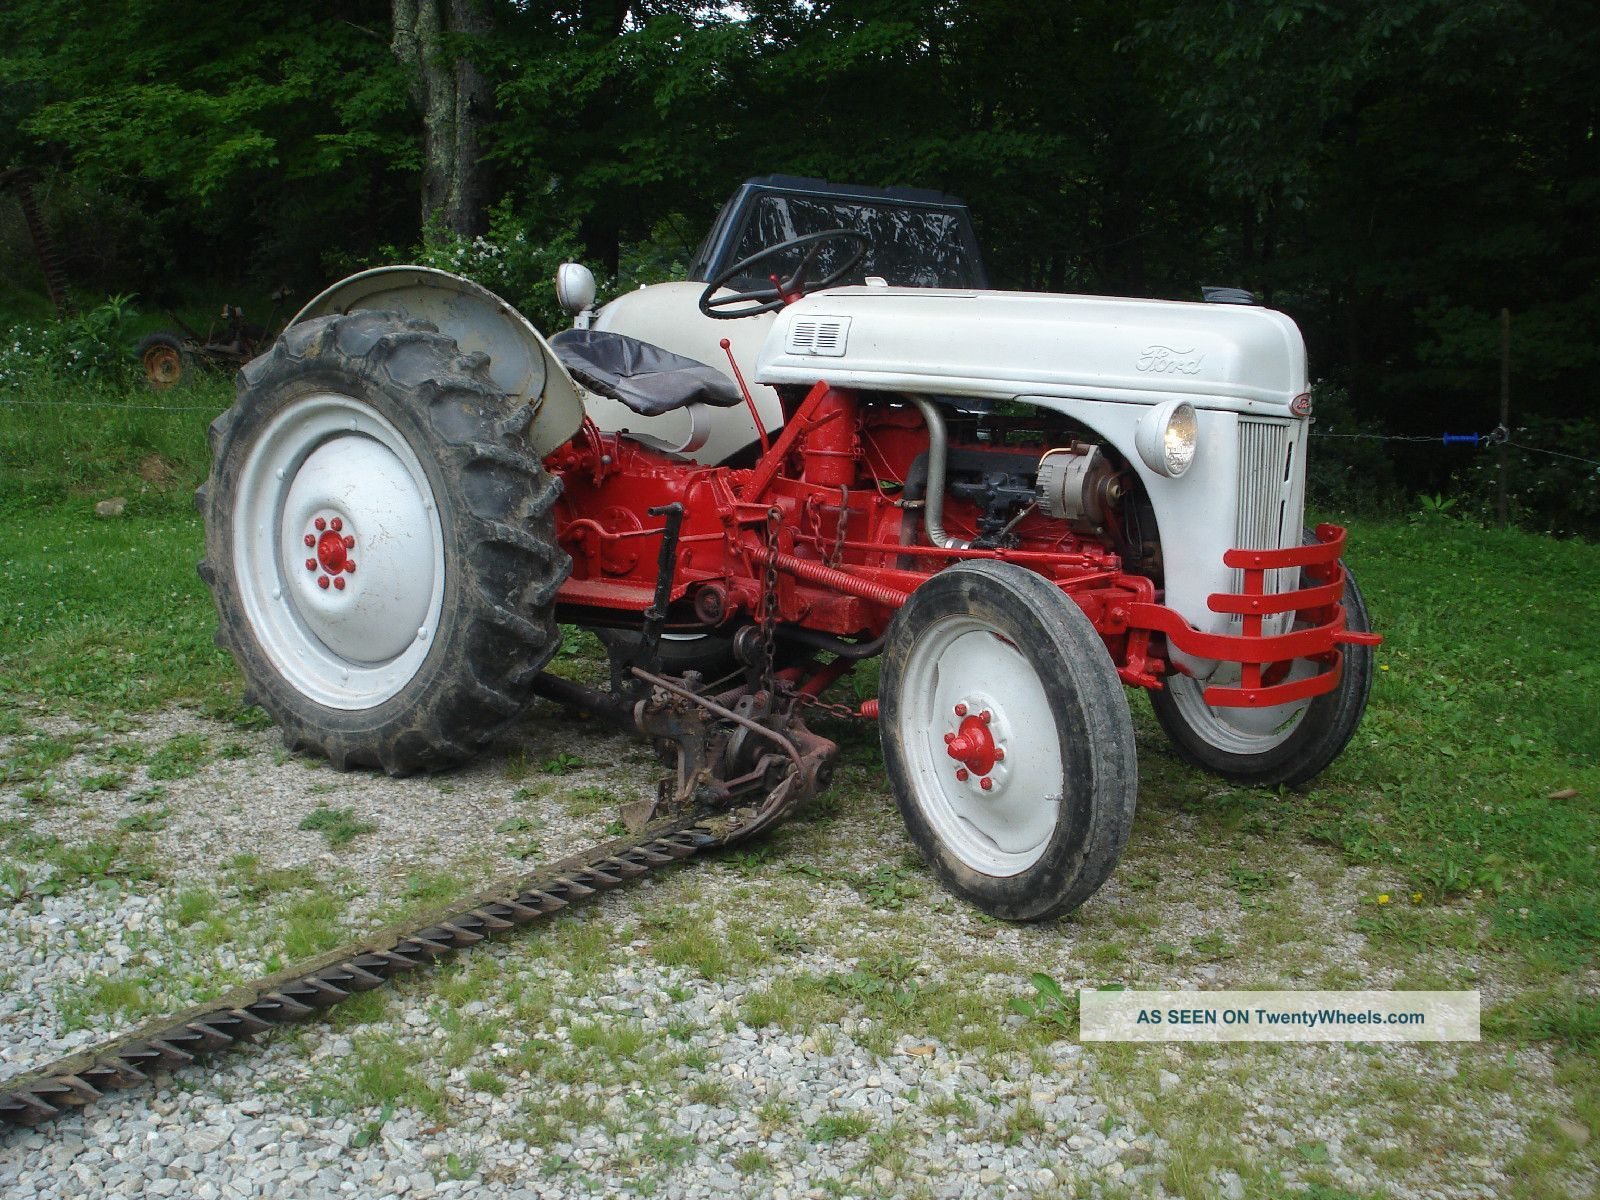 1949 Ford 8n Farm Tractor With Side Sickle Bar Finish Mower Antique &  Vintage Farm Equip photo